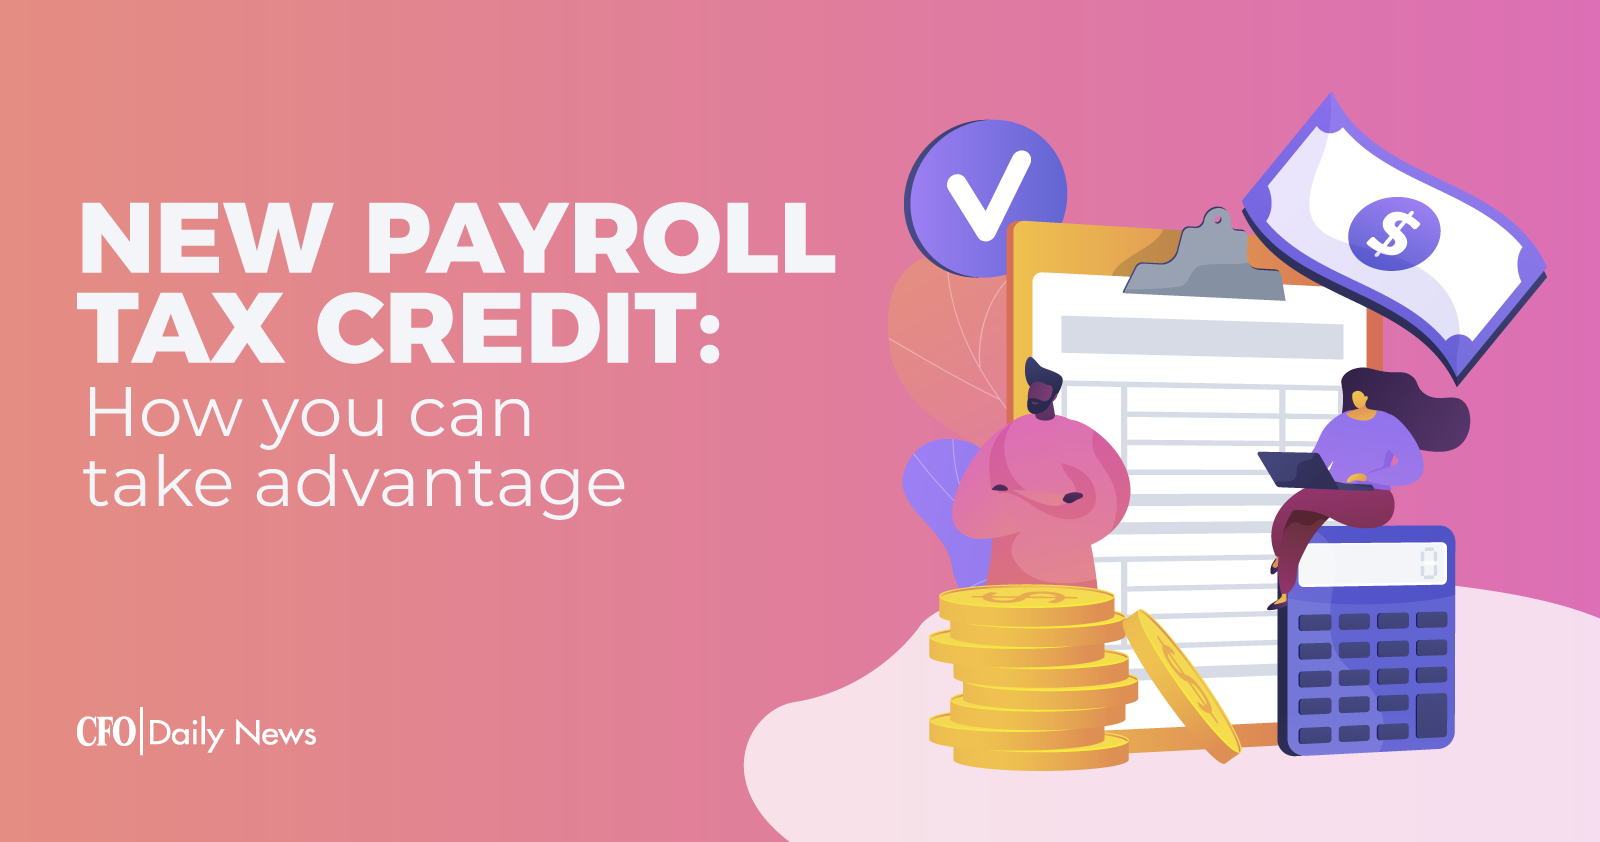 New payroll tax credit and how you can take advantage